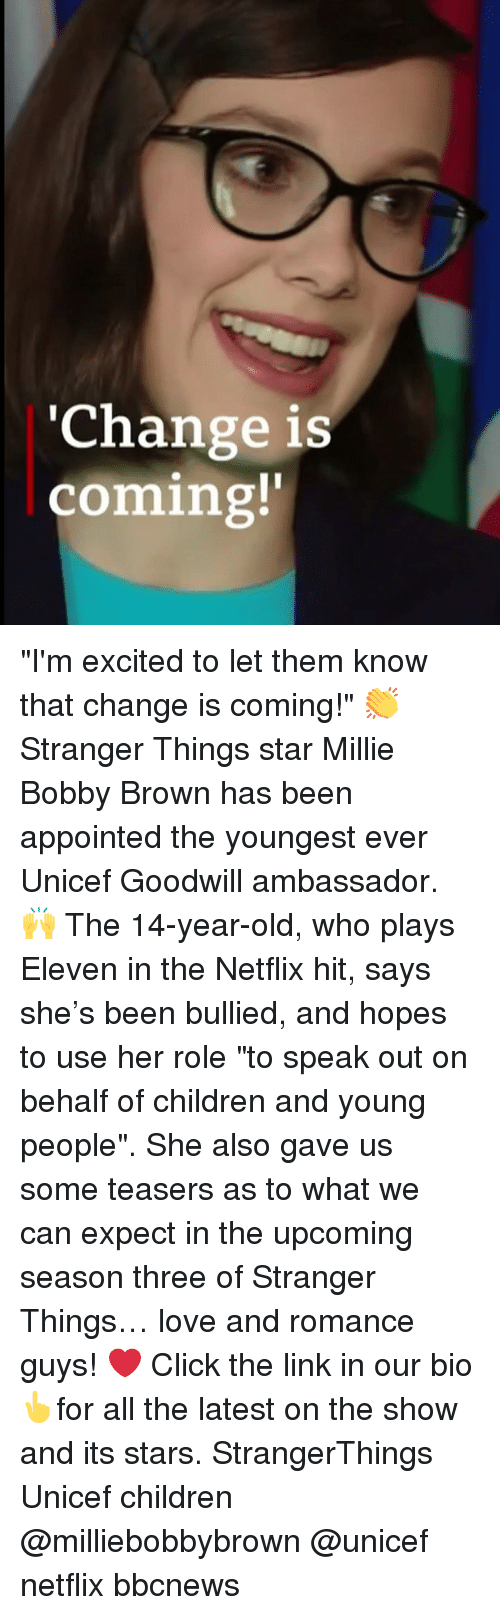 """unicef: 'Change is  coming!' """"I'm excited to let them know that change is coming!"""" 👏 Stranger Things star Millie Bobby Brown has been appointed the youngest ever Unicef Goodwill ambassador. 🙌 The 14-year-old, who plays Eleven in the Netflix hit, says she's been bullied, and hopes to use her role """"to speak out on behalf of children and young people"""". She also gave us some teasers as to what we can expect in the upcoming season three of Stranger Things… love and romance guys! ❤️ Click the link in our bio👆for all the latest on the show and its stars. StrangerThings Unicef children @milliebobbybrown @unicef netflix bbcnews"""